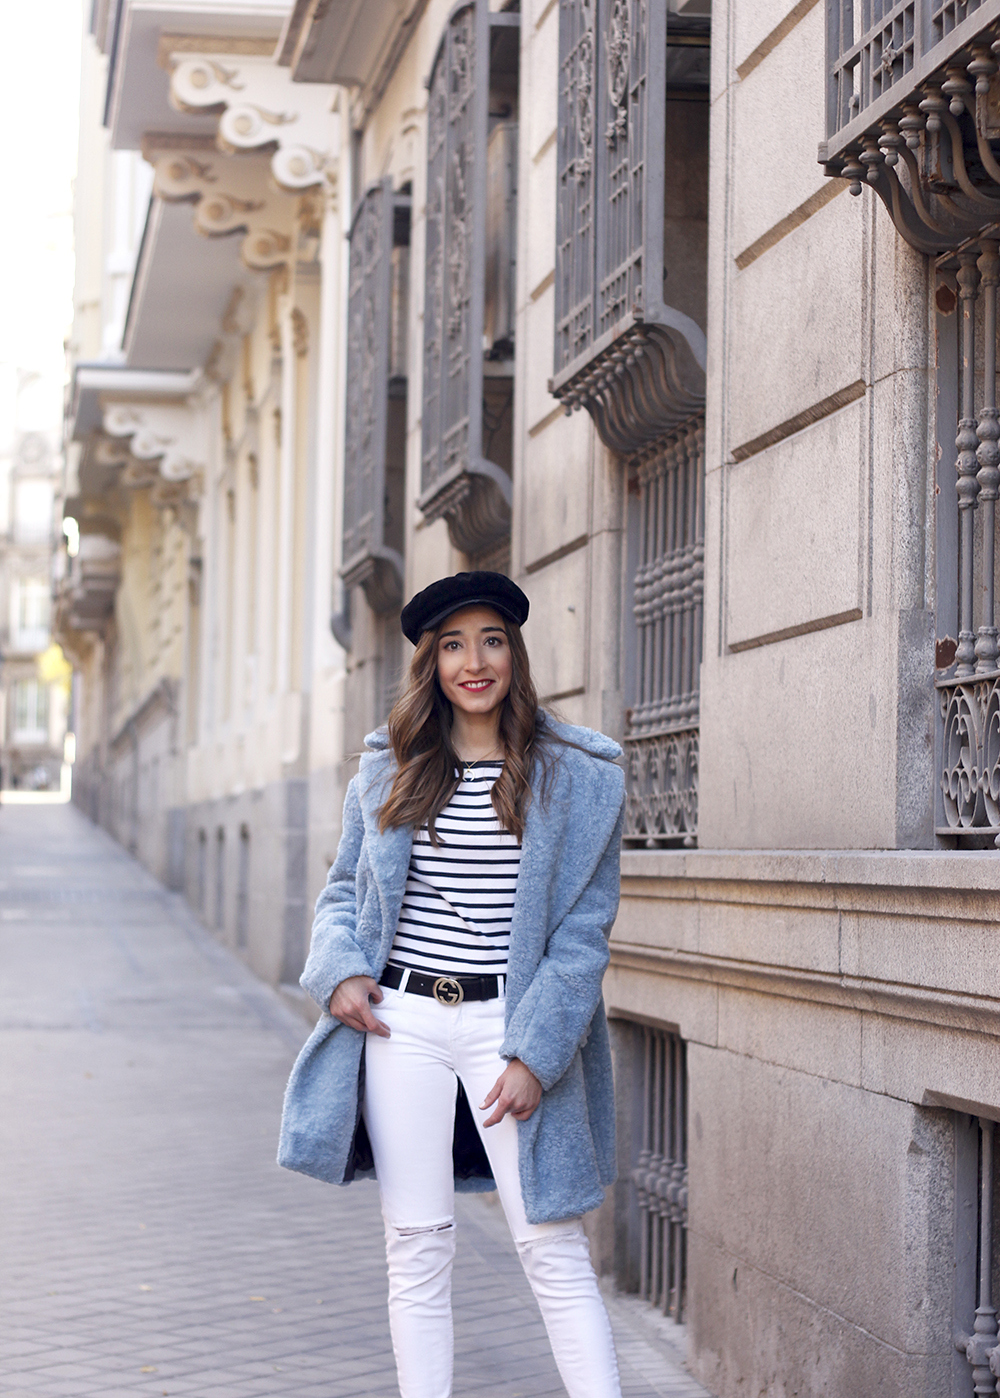 blue fur coat stripes white ripped jeans givenchy bag navy cap fall outfit street style09